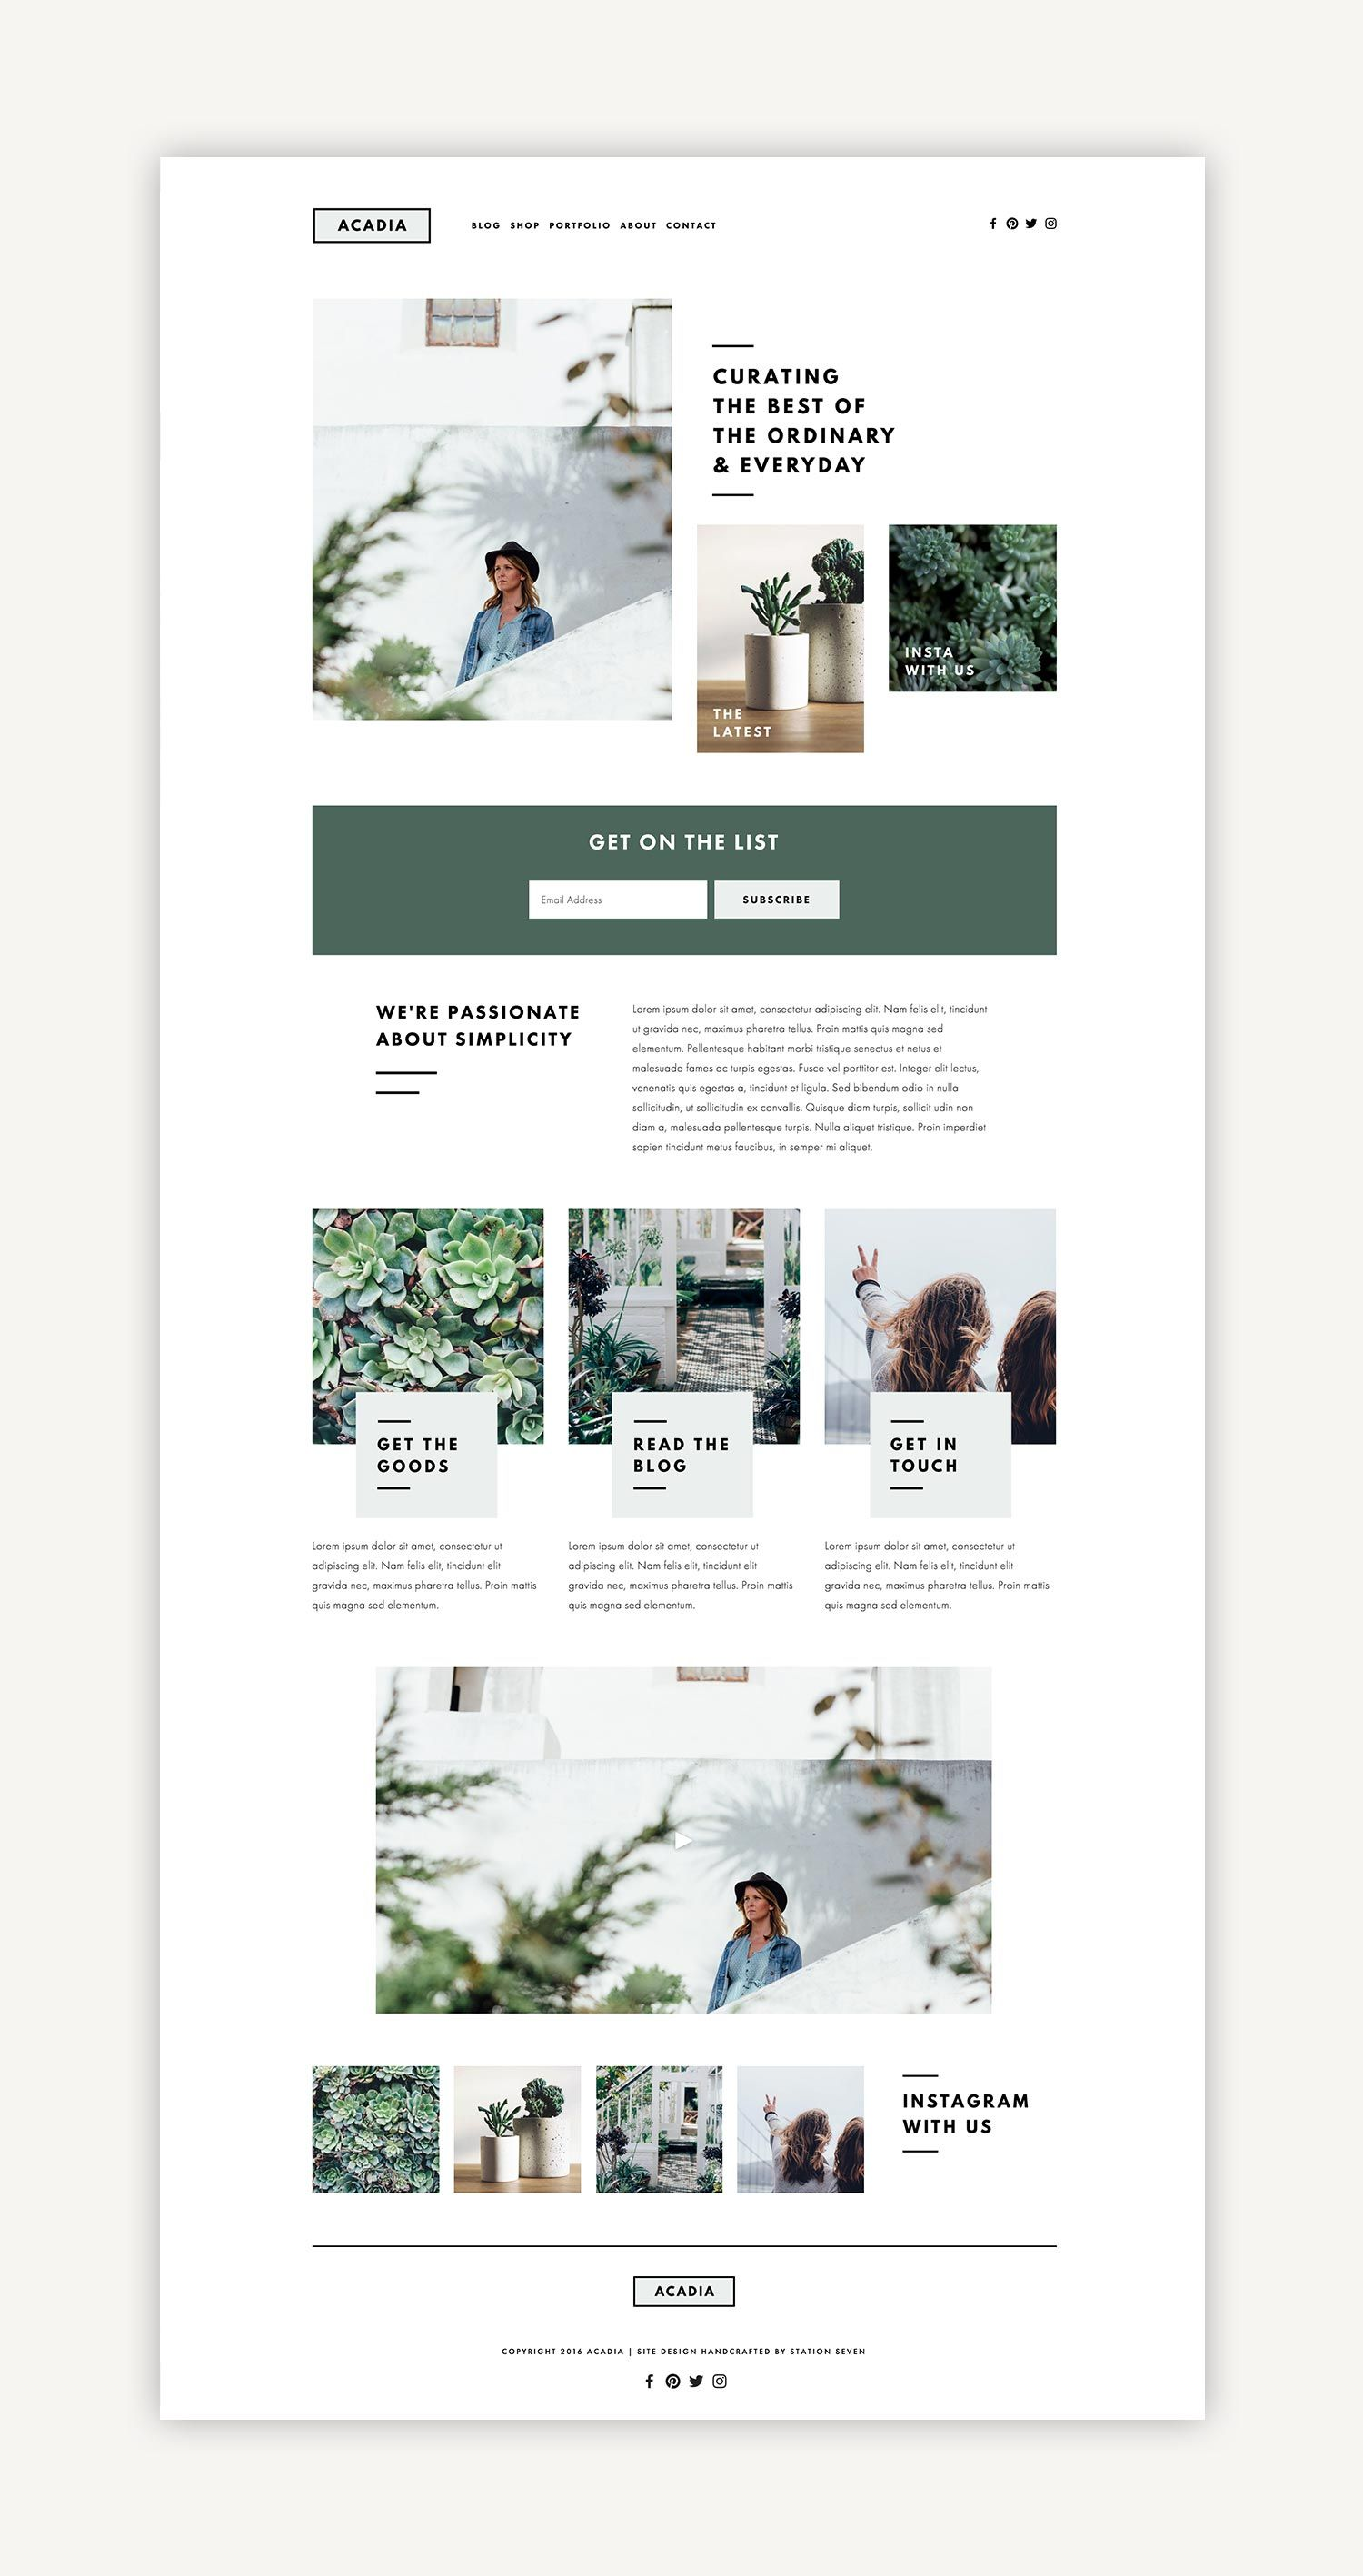 Acadia Squarespace Kit — Station Seven: Squarespace Templates, WordPress Themes, and Free Resources for Creative Entrepreneurs